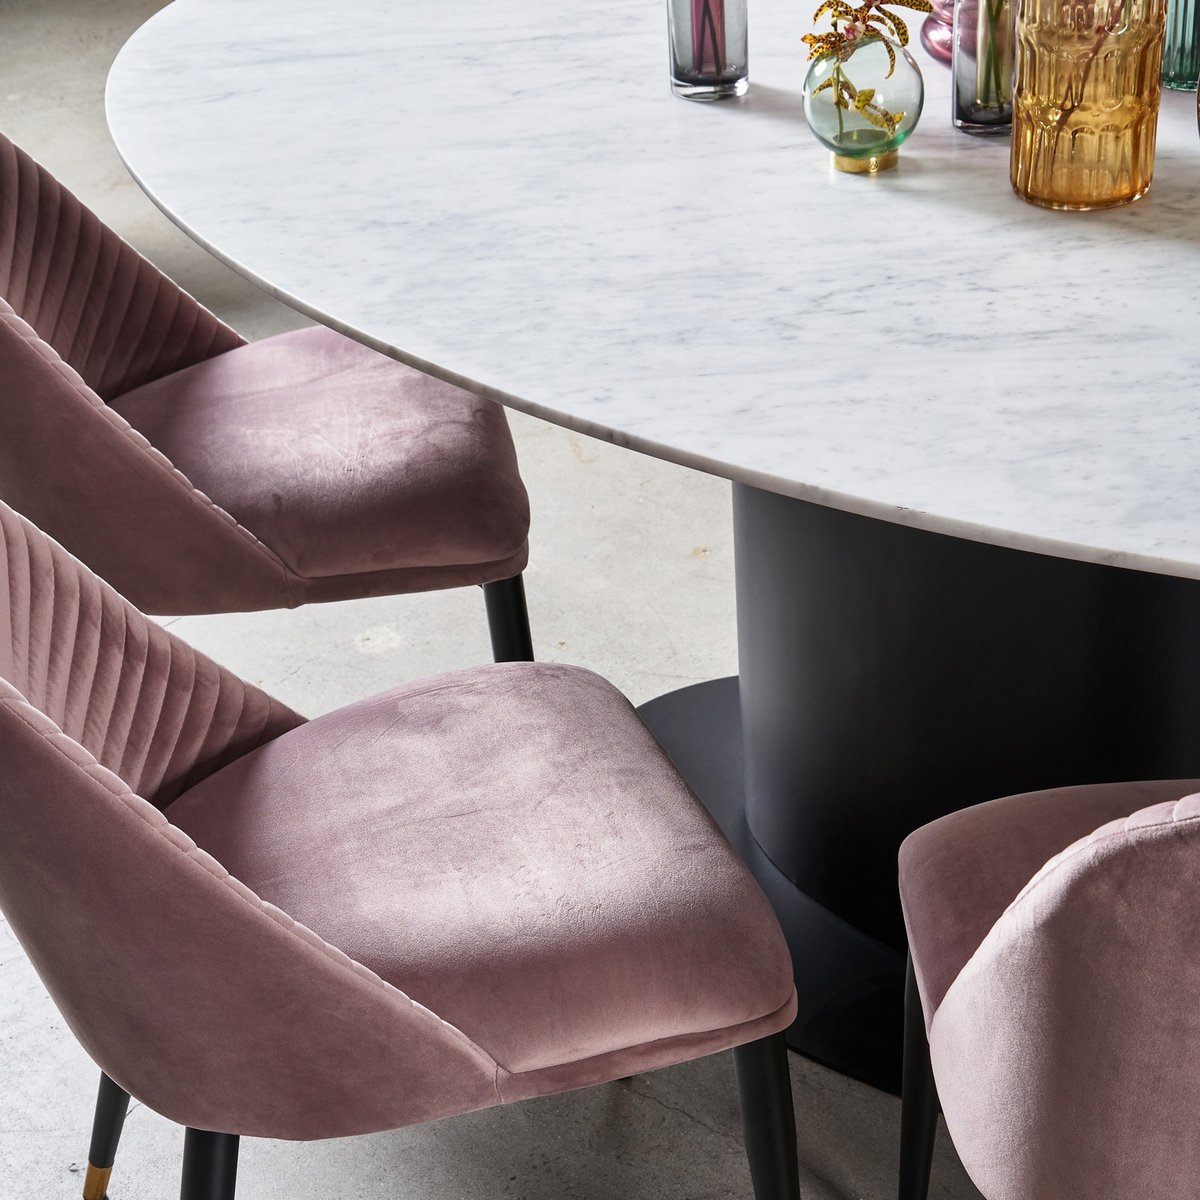 Trit House على تويتر Oliver Oval Marble Dining Table Transporting You To A New Realm Of Form And Function This Piece Creates A Perfect Balance Of Contemporary Design And Richness Trithouseolivertable Https T Co 9k42sd2byh